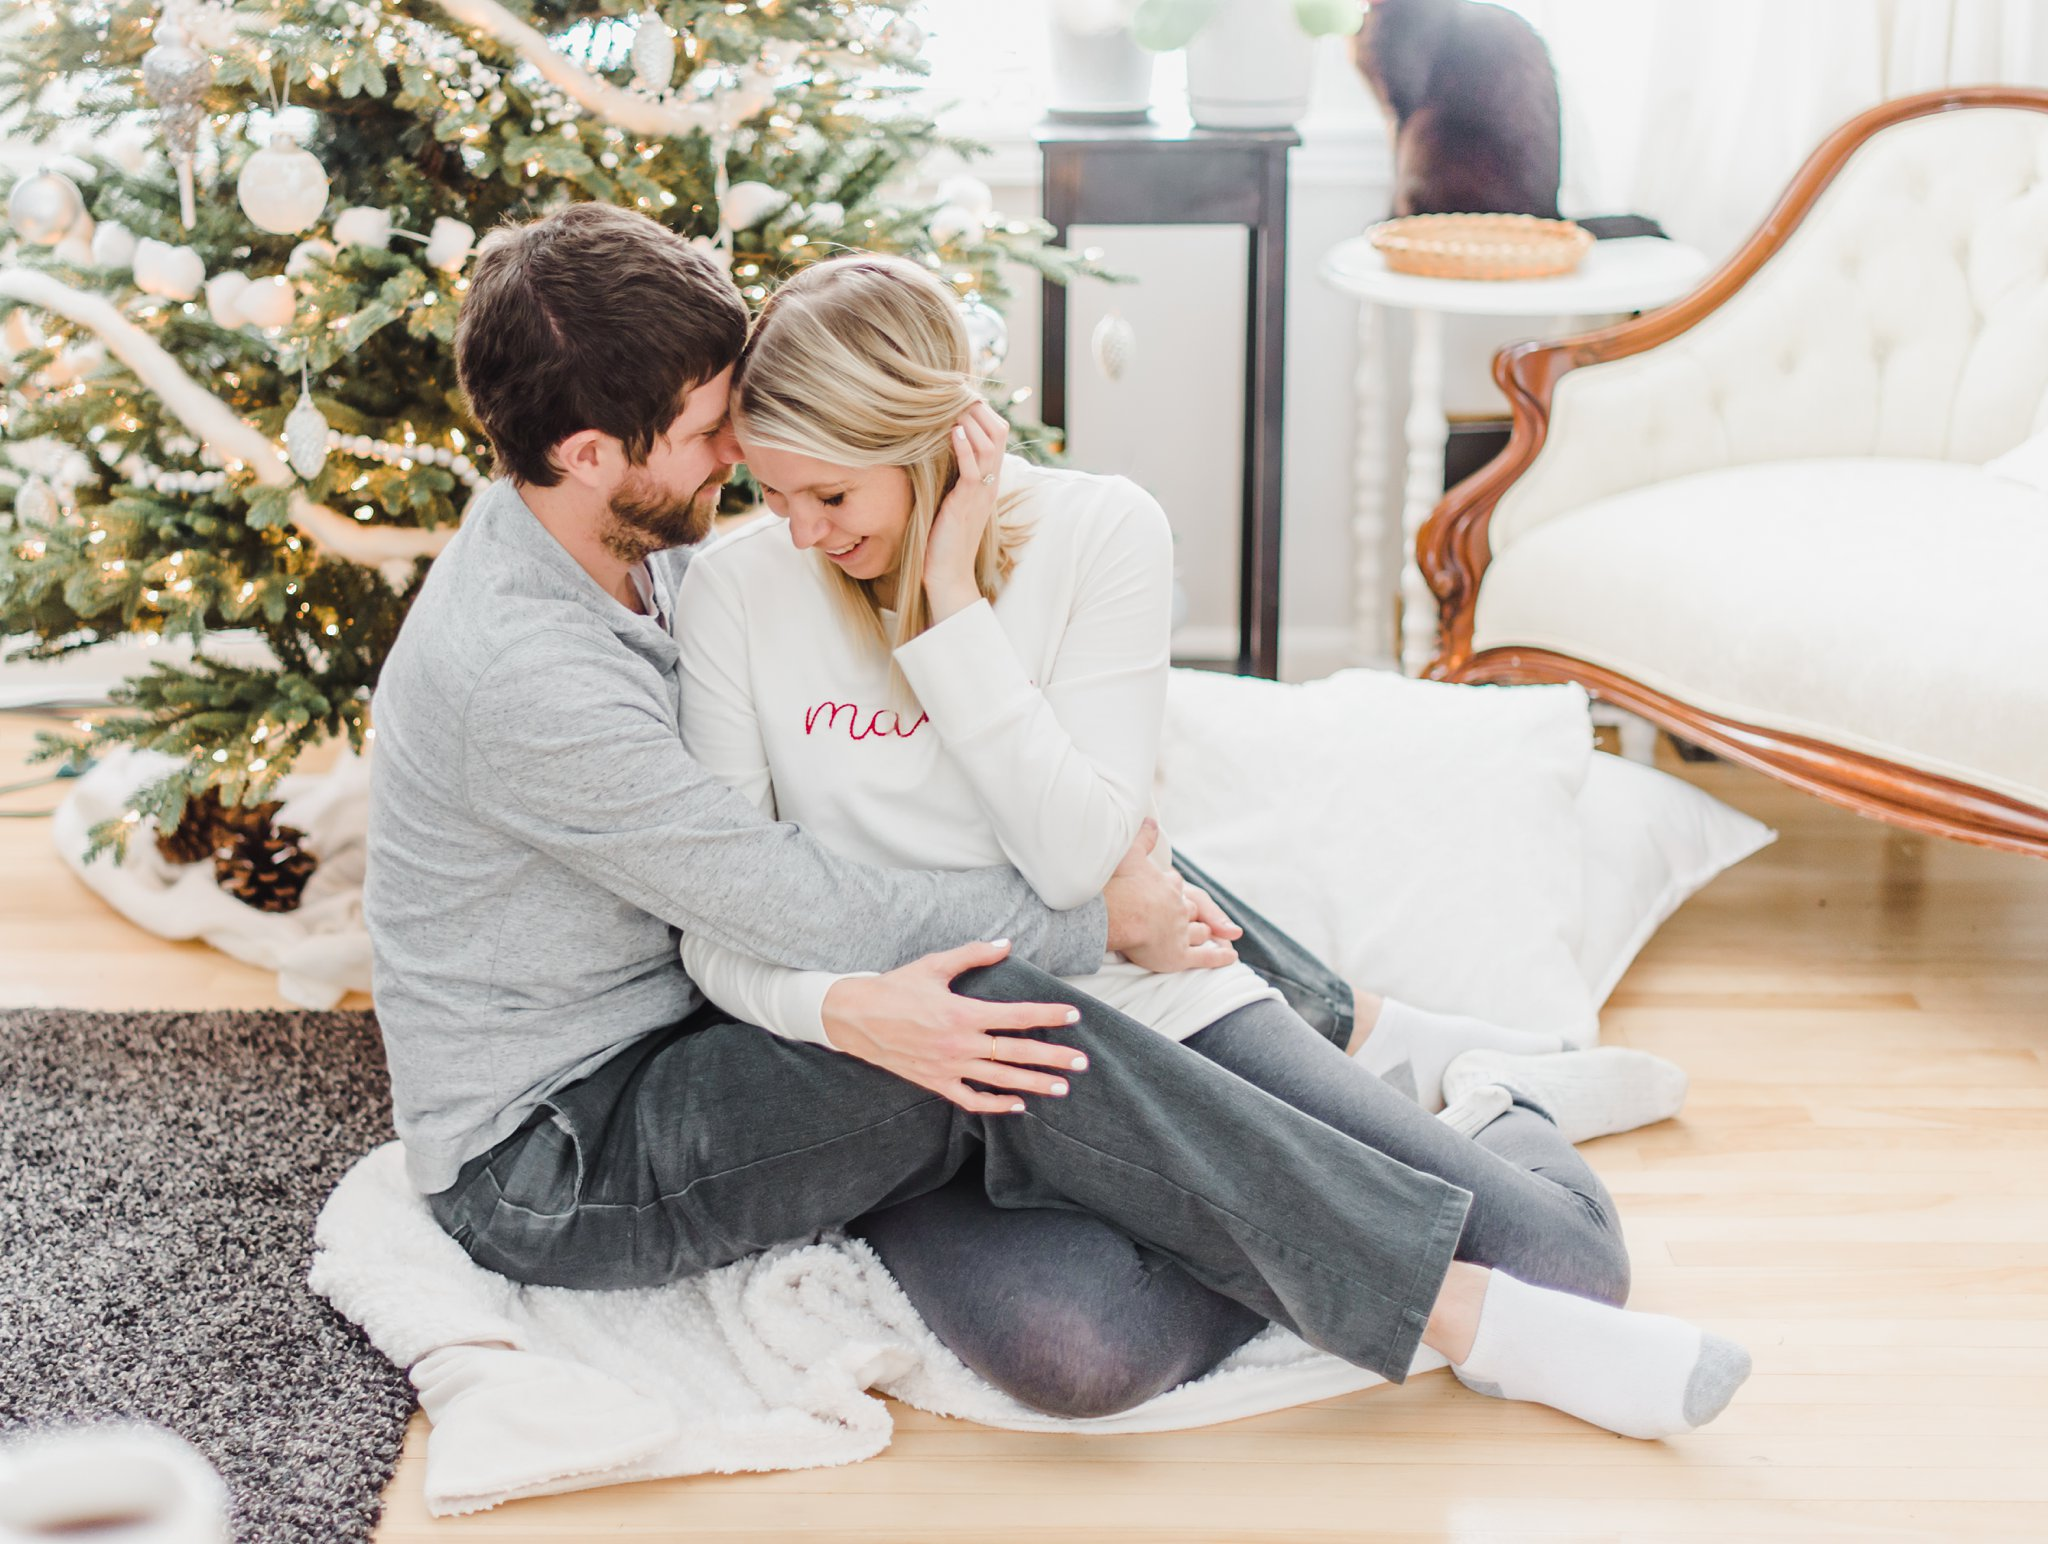 Cuddles by the christmas tree, Lifestyle Maternity Photos in Ottawa on 'Pancake Sunday'